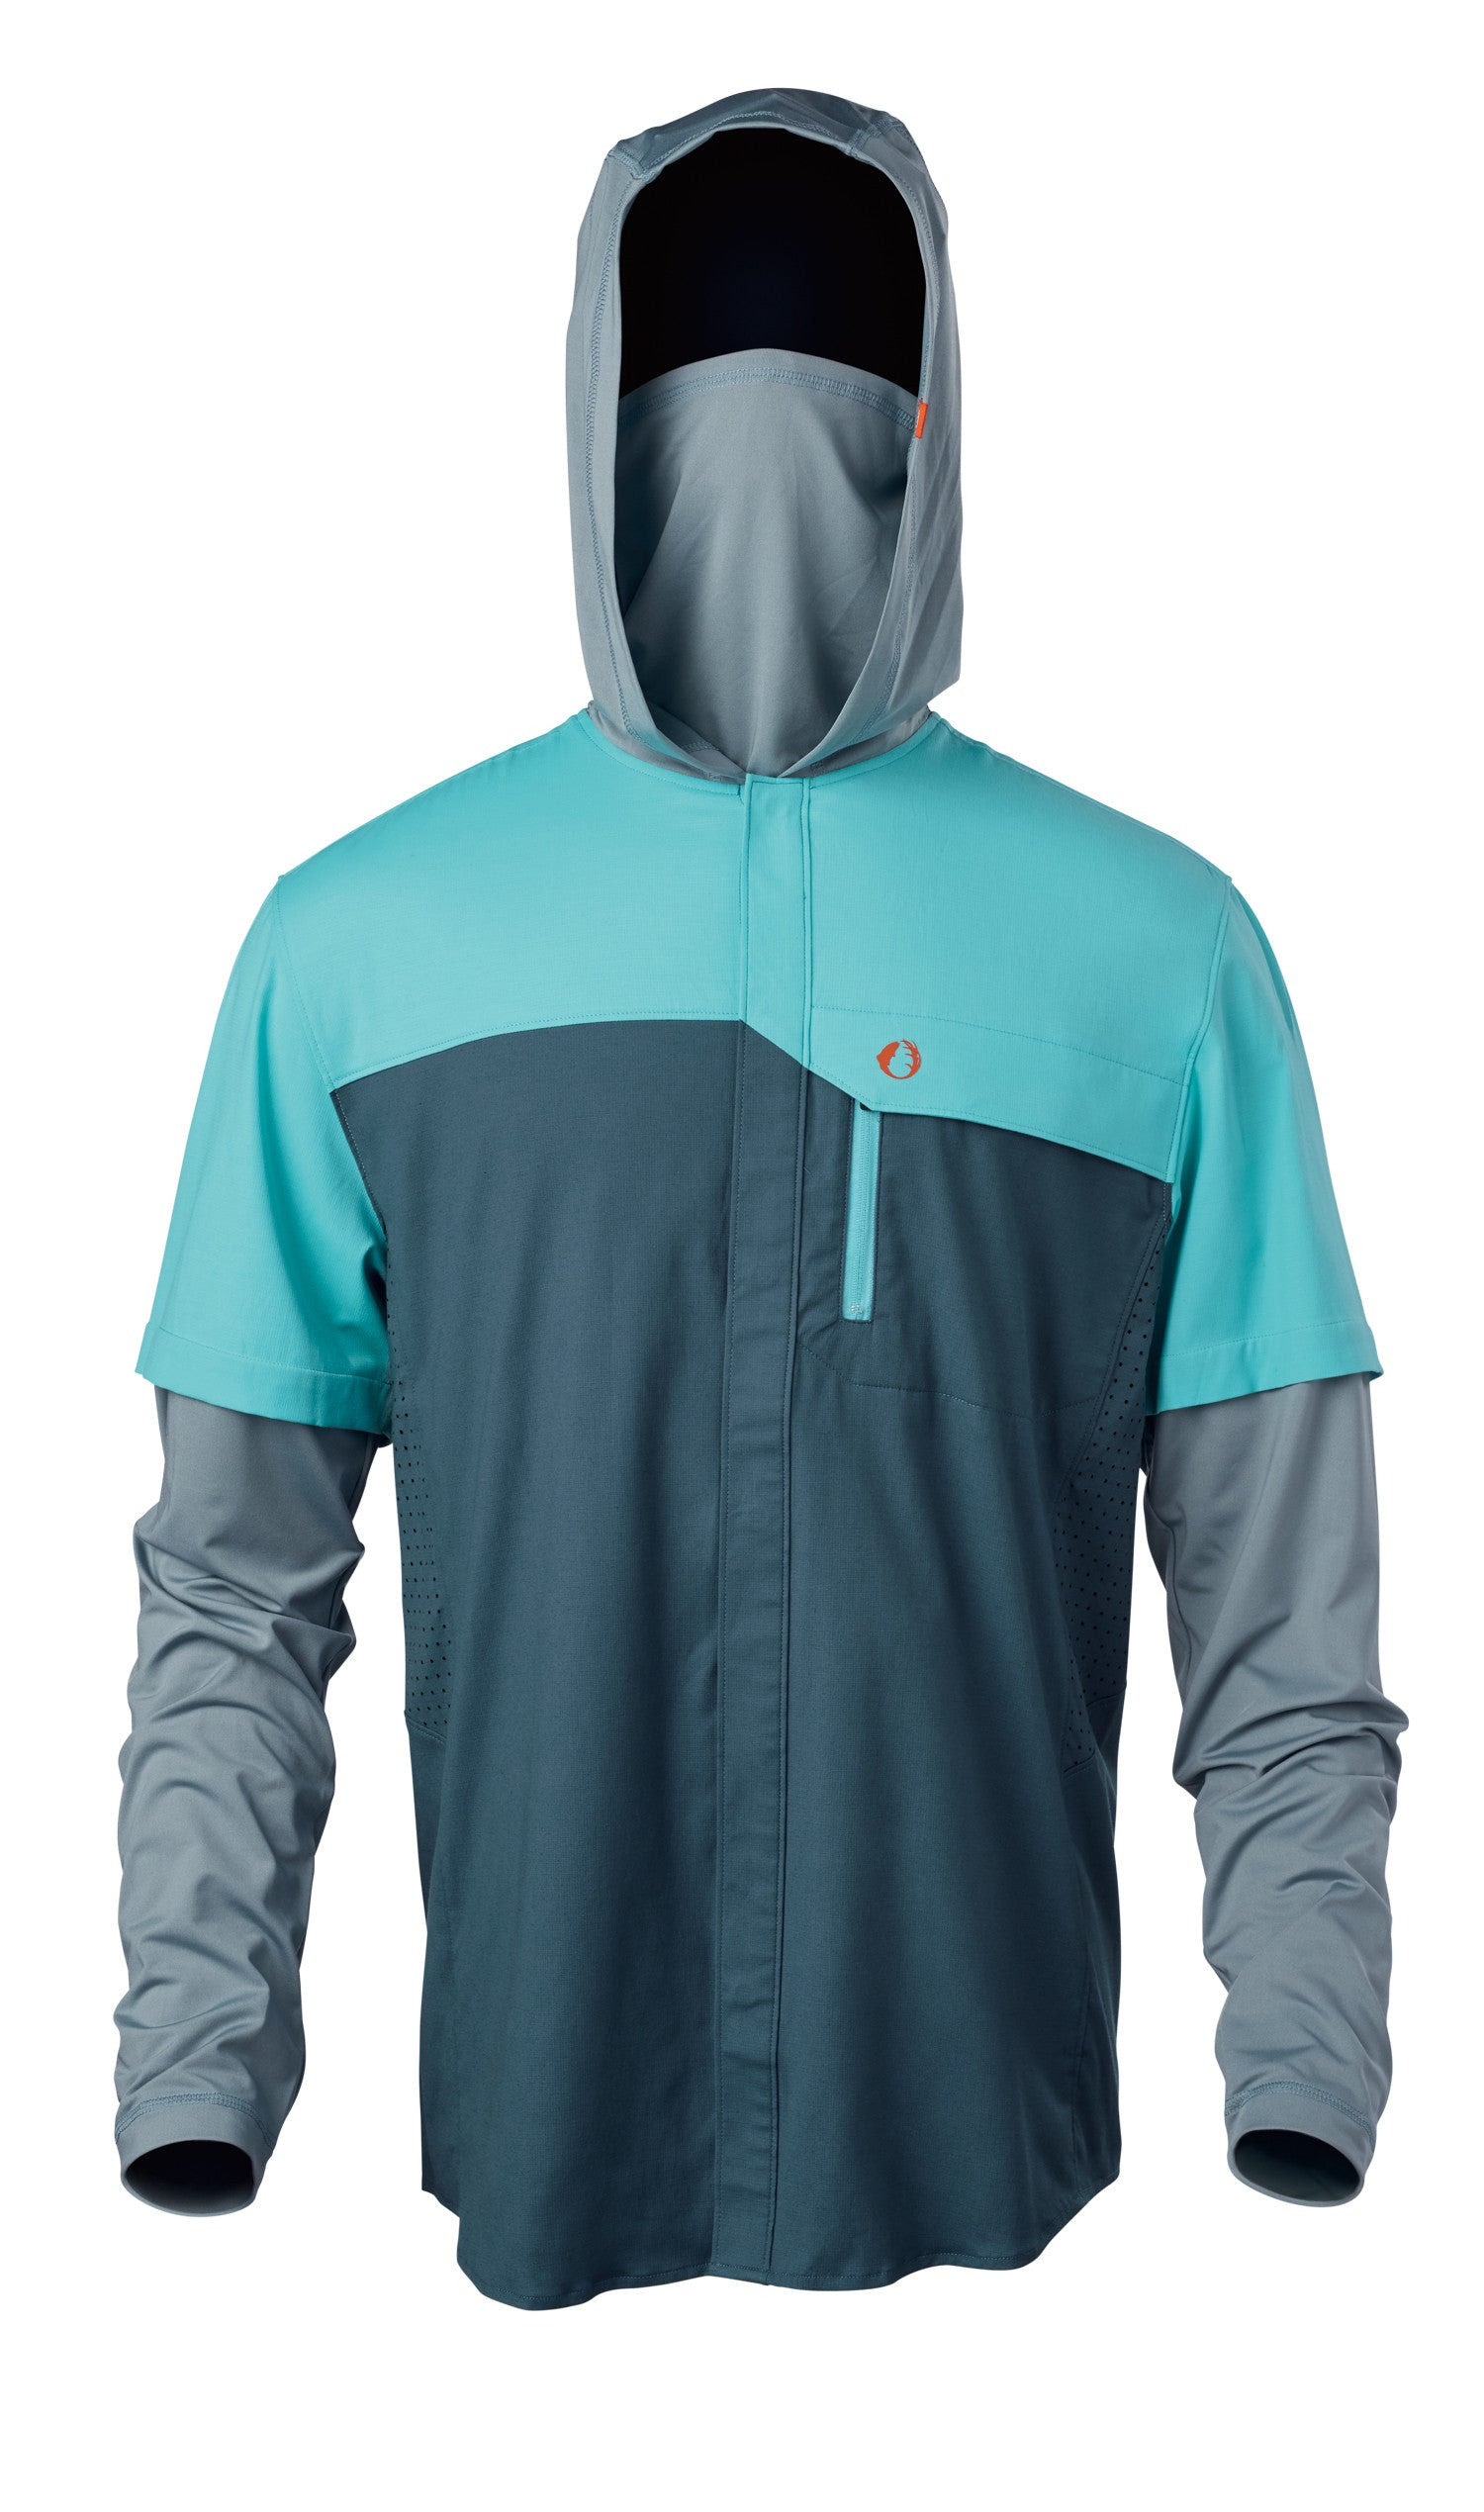 Quick-dry, moisture wicking cotton/poly fishing shirt keeps you focused on the catch with its knit hood, built-in gaiter and long sleeves for extra sun protection.